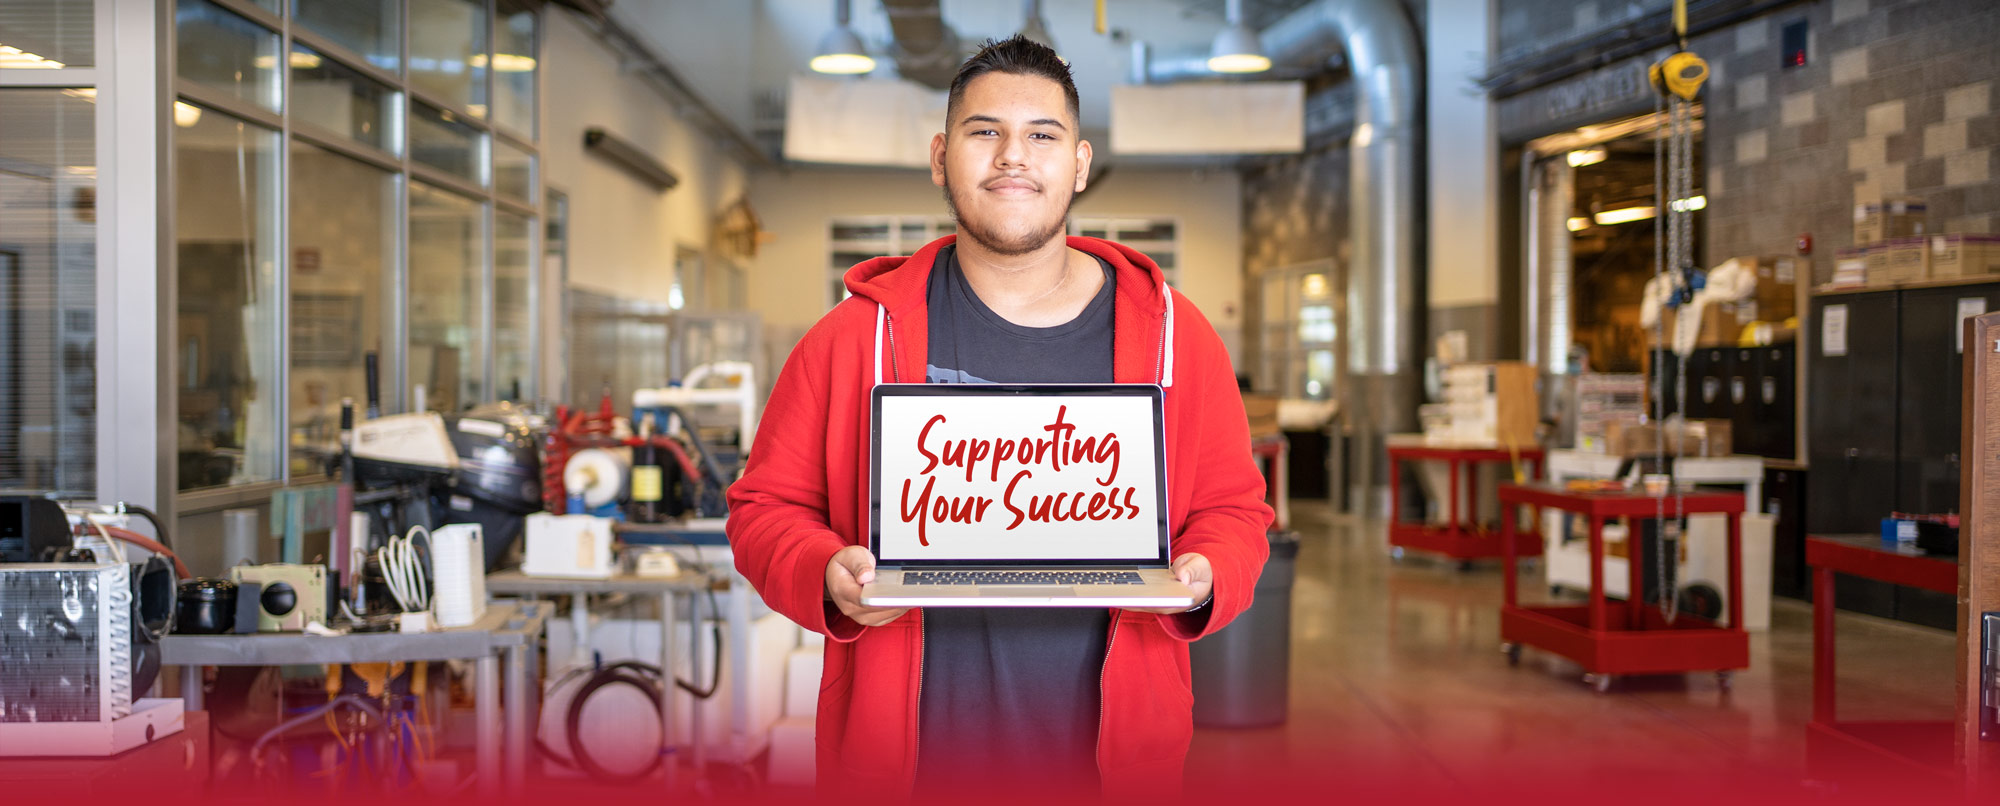 Supporting Your Success. Spring Quarter classes begin April 5, 2021.